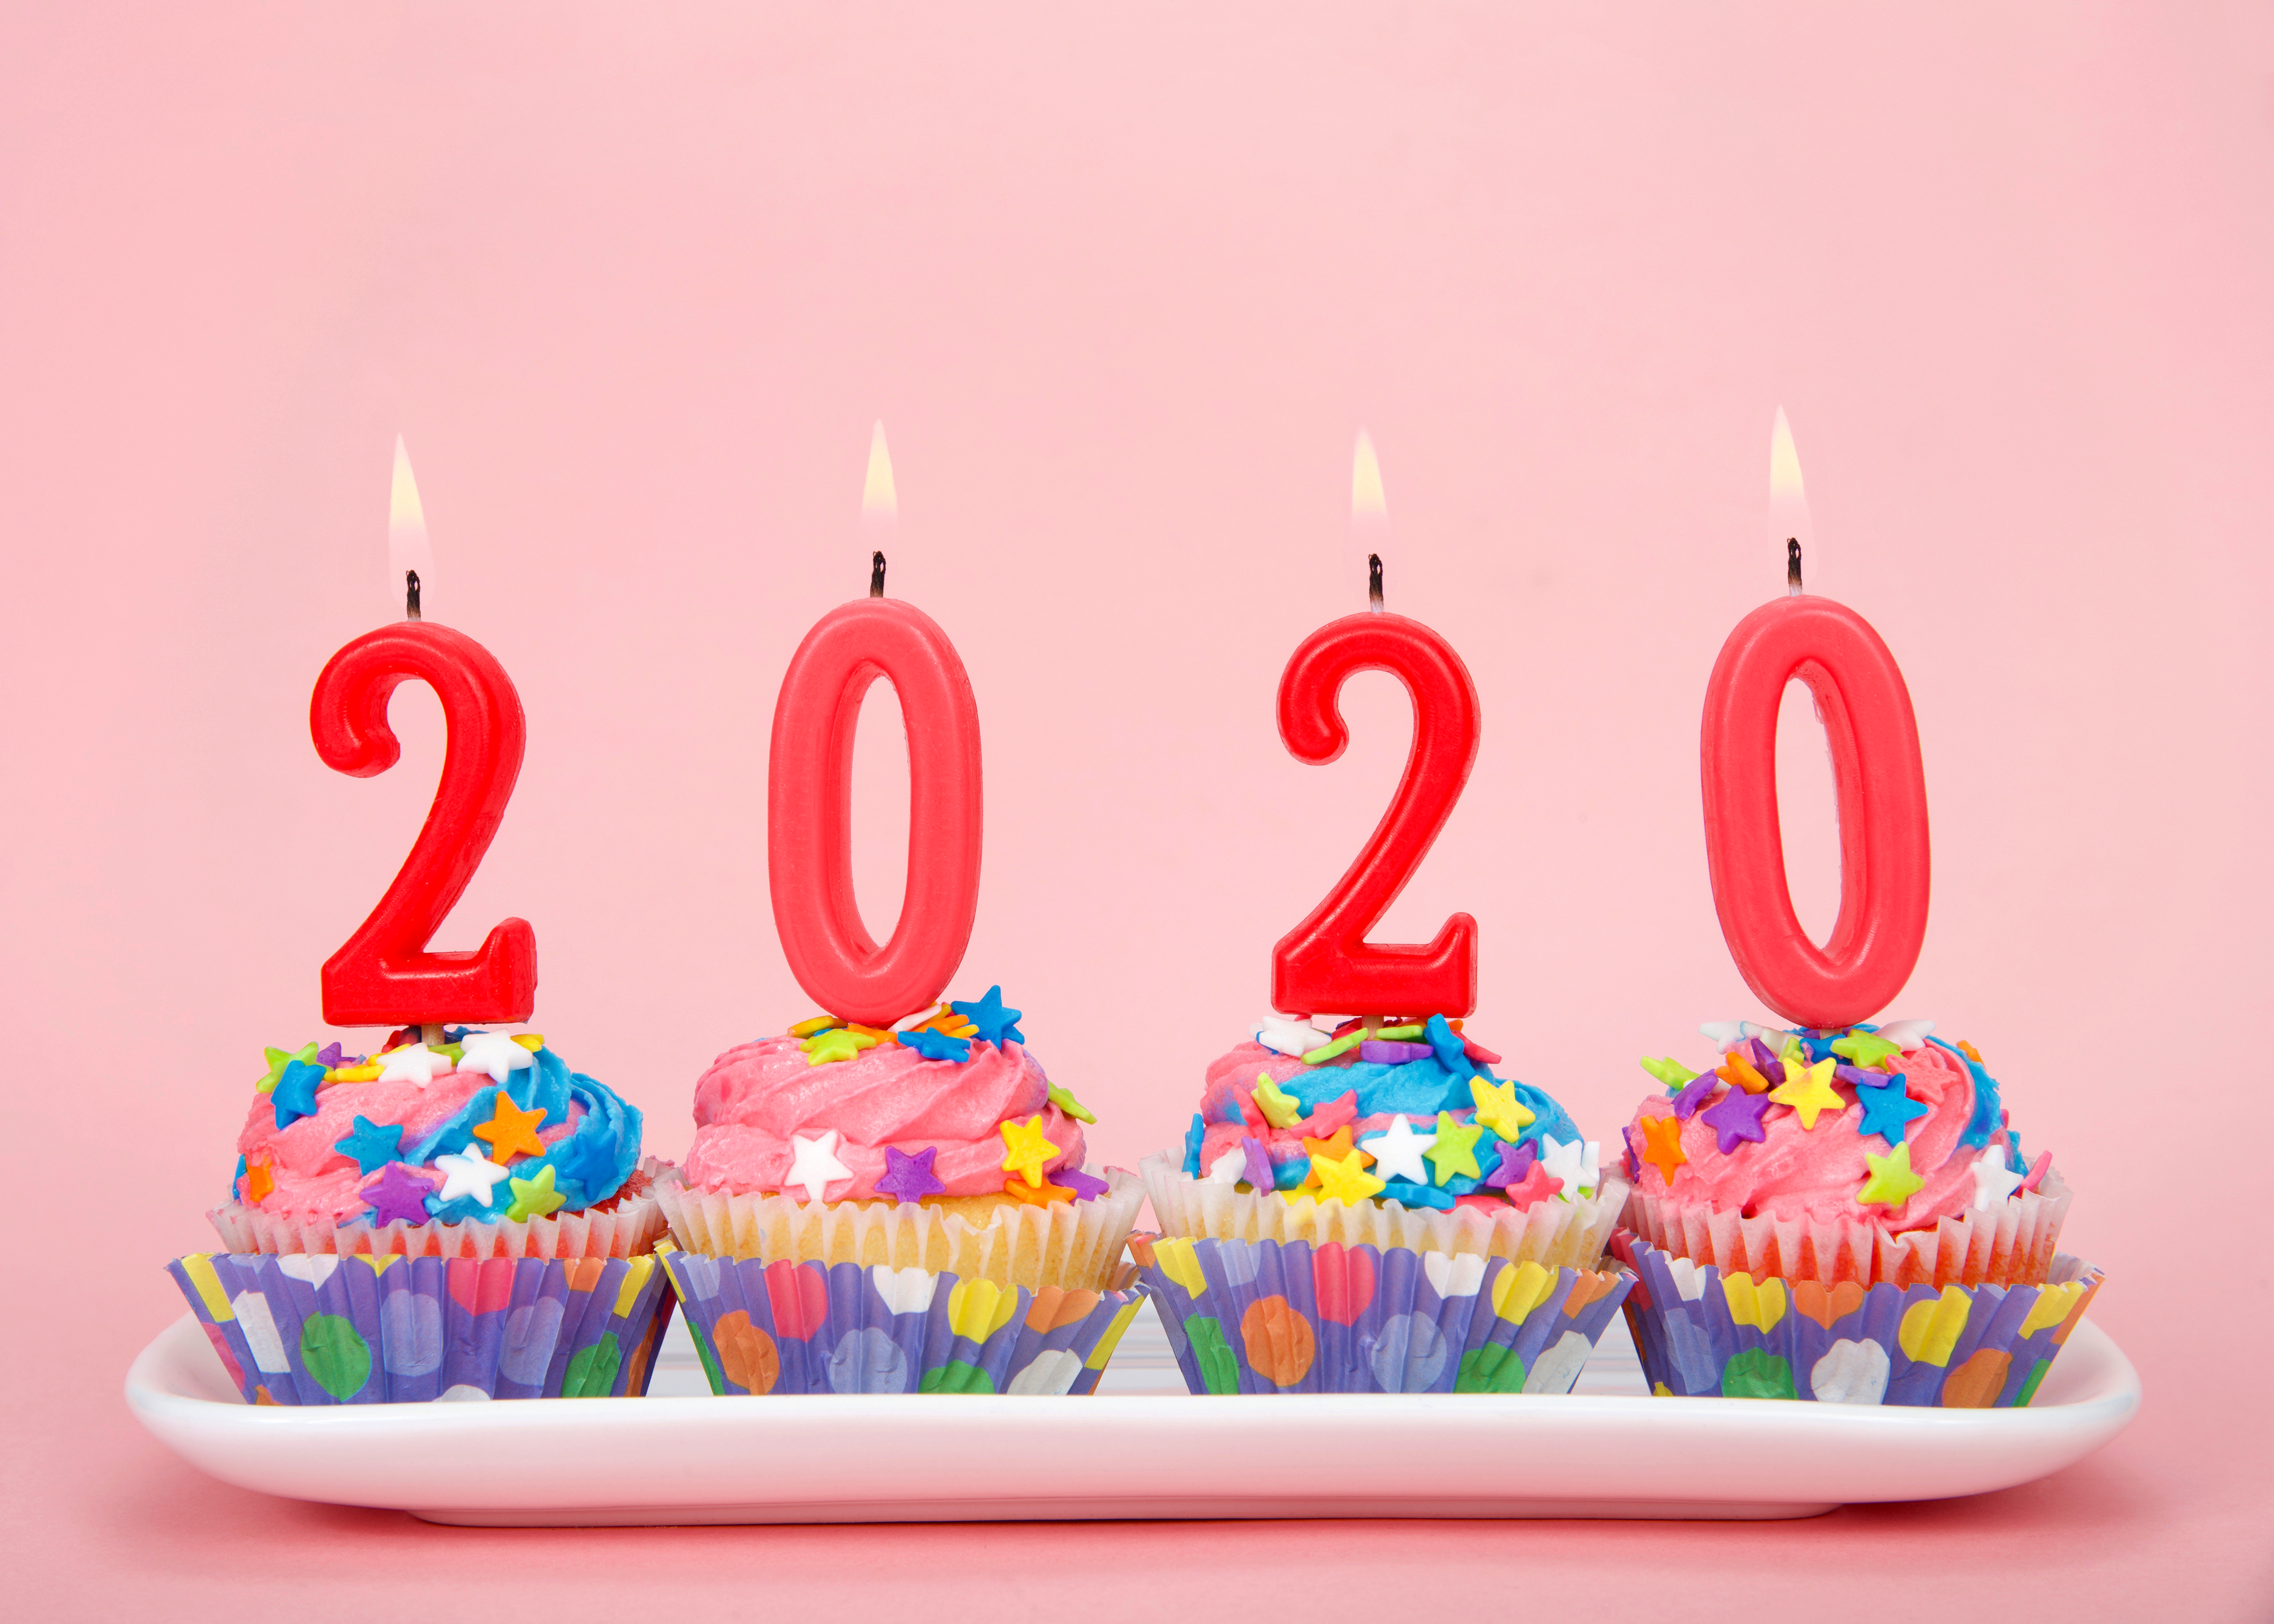 Numbered 2020 candles lit up on top of four colorful cupcakes against a pink background.